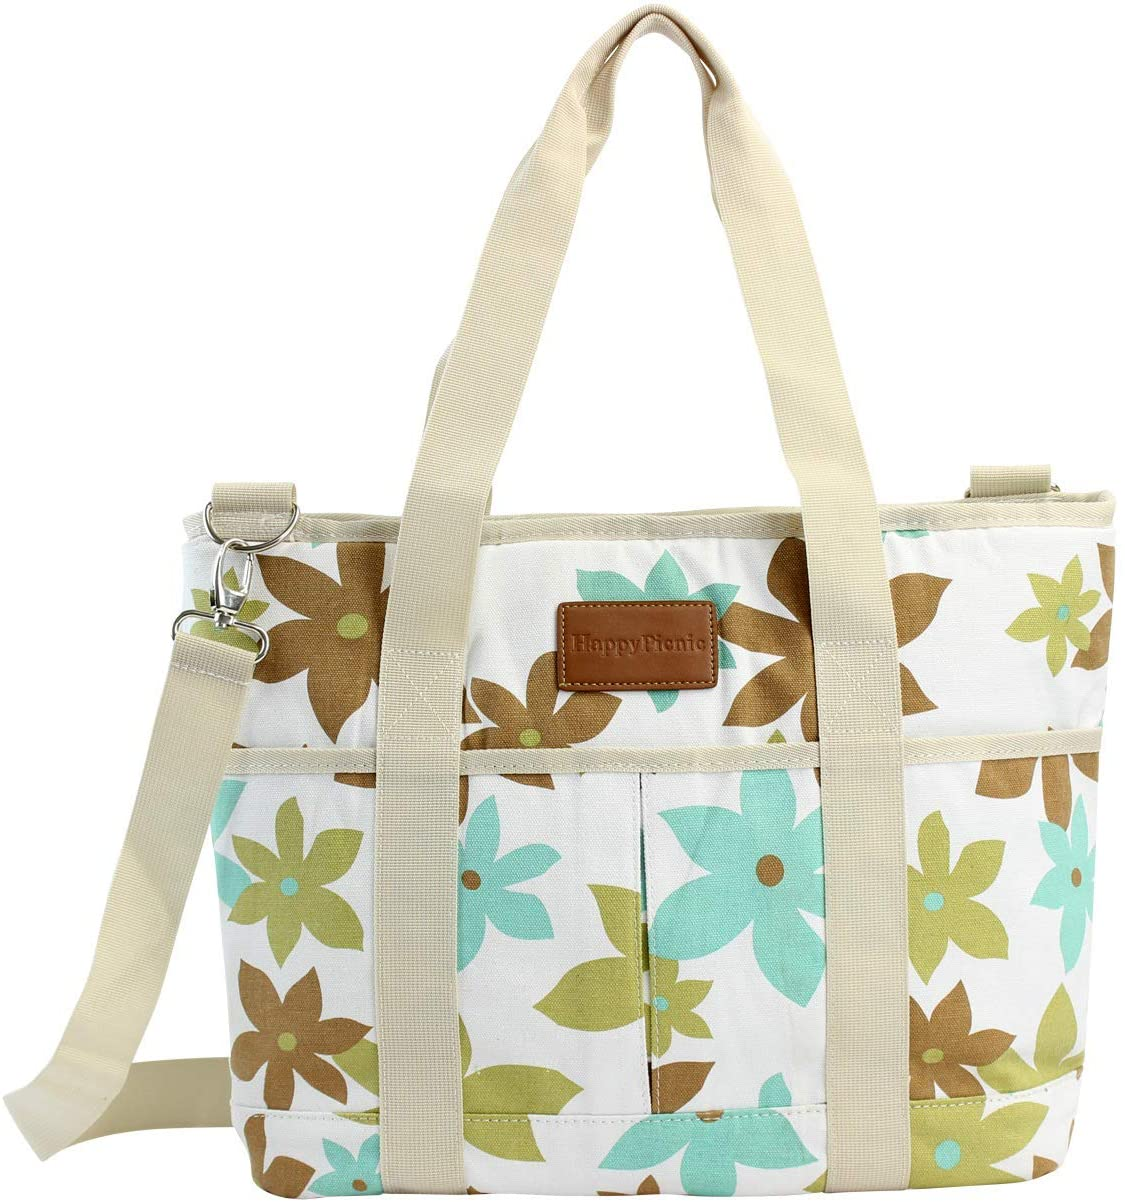 HappyPicnic 16L Large Insulated Bag, 25CAN Waterproof Cooler Carrier Bag, Thermal Picnic Tote, Lunch Bags for Outdoor Camping, Beach Day or Travel, Collapsible Grocery Shopping Storage Bag - Leaf